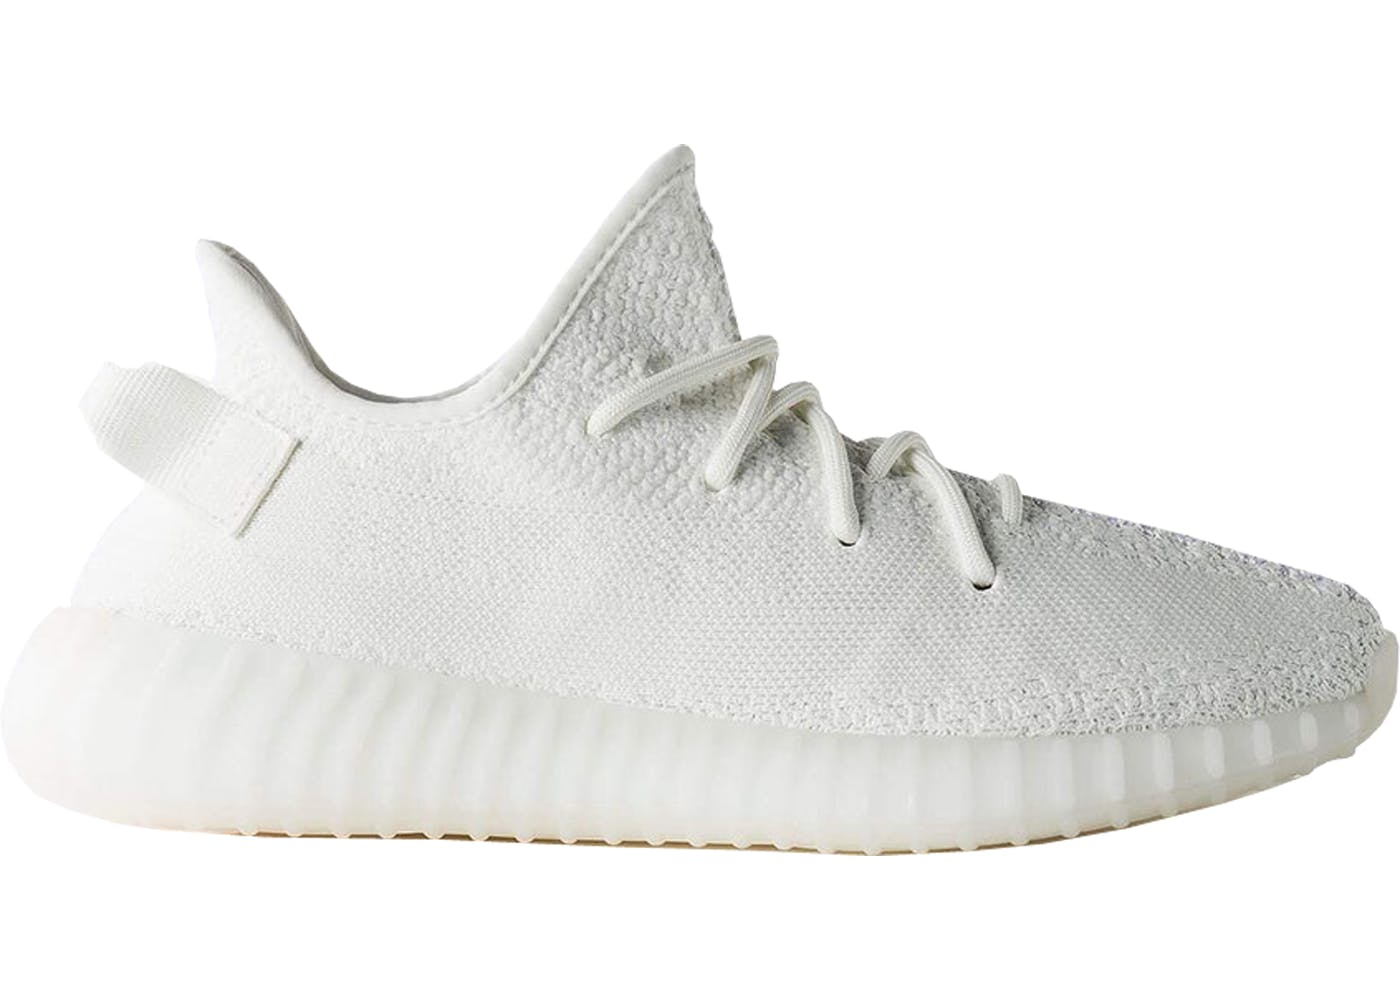 adidas yeezy boost 350 cream